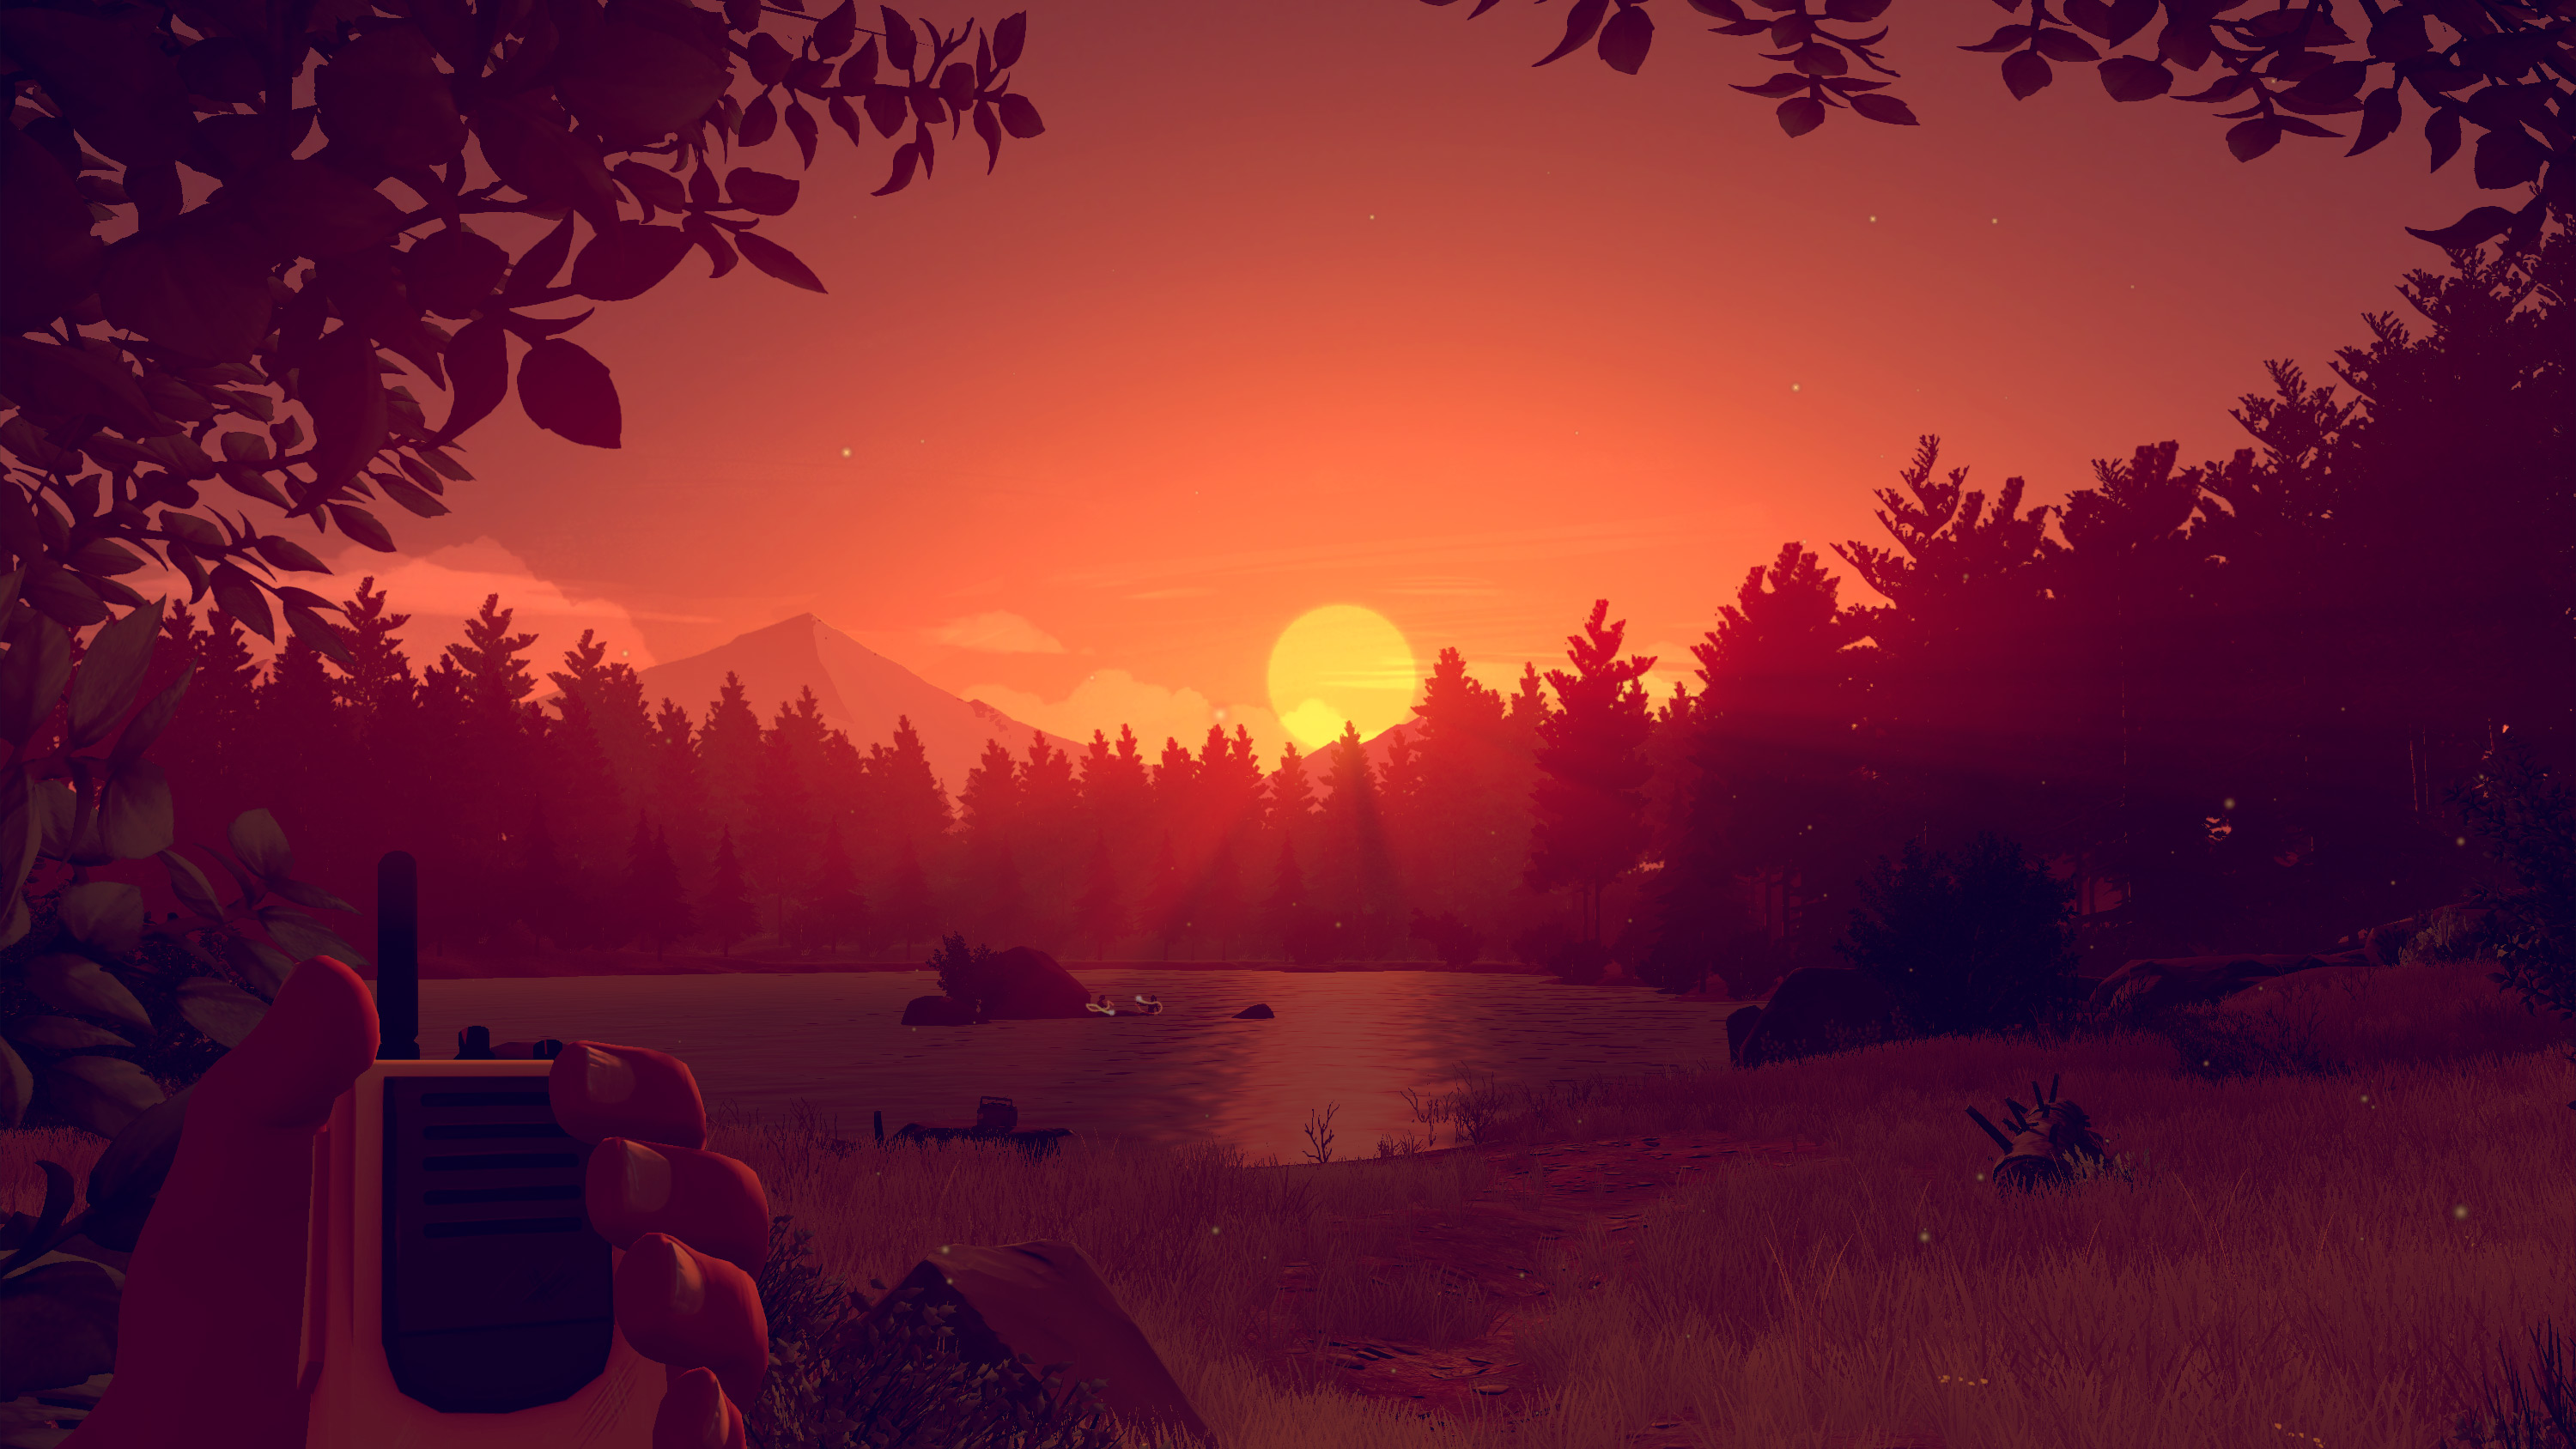 Casting voices for an audio-only relationship presented challenges - and one key benefit - for Firewatch writer Sean Vanaman.